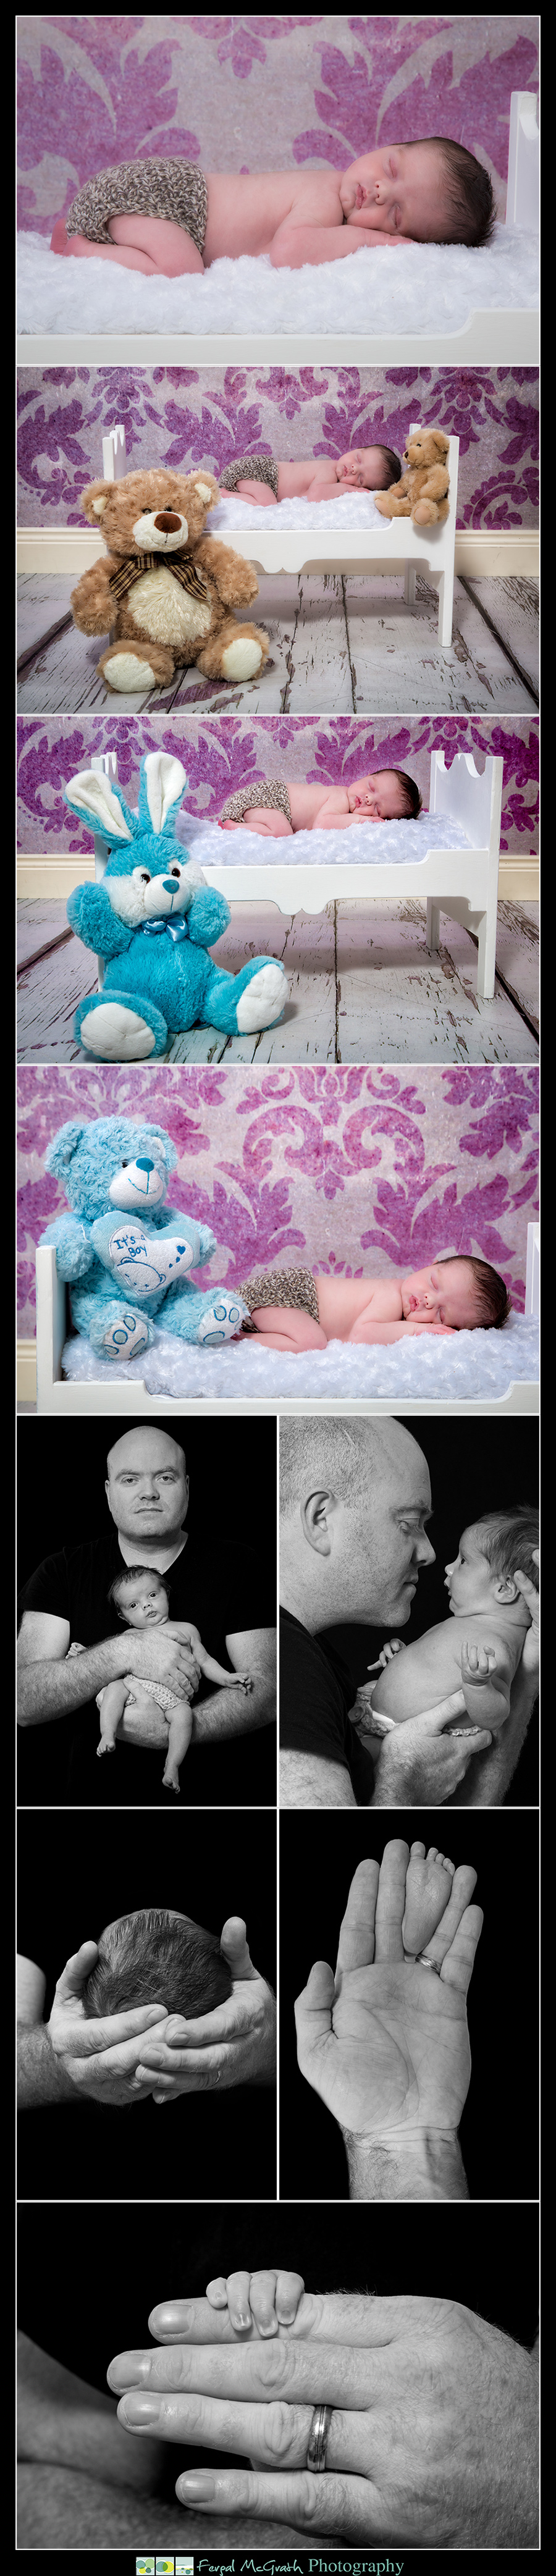 Newborn Baby Photography Donegal and Sligo baby boy on a wooden bed and with his older sisters